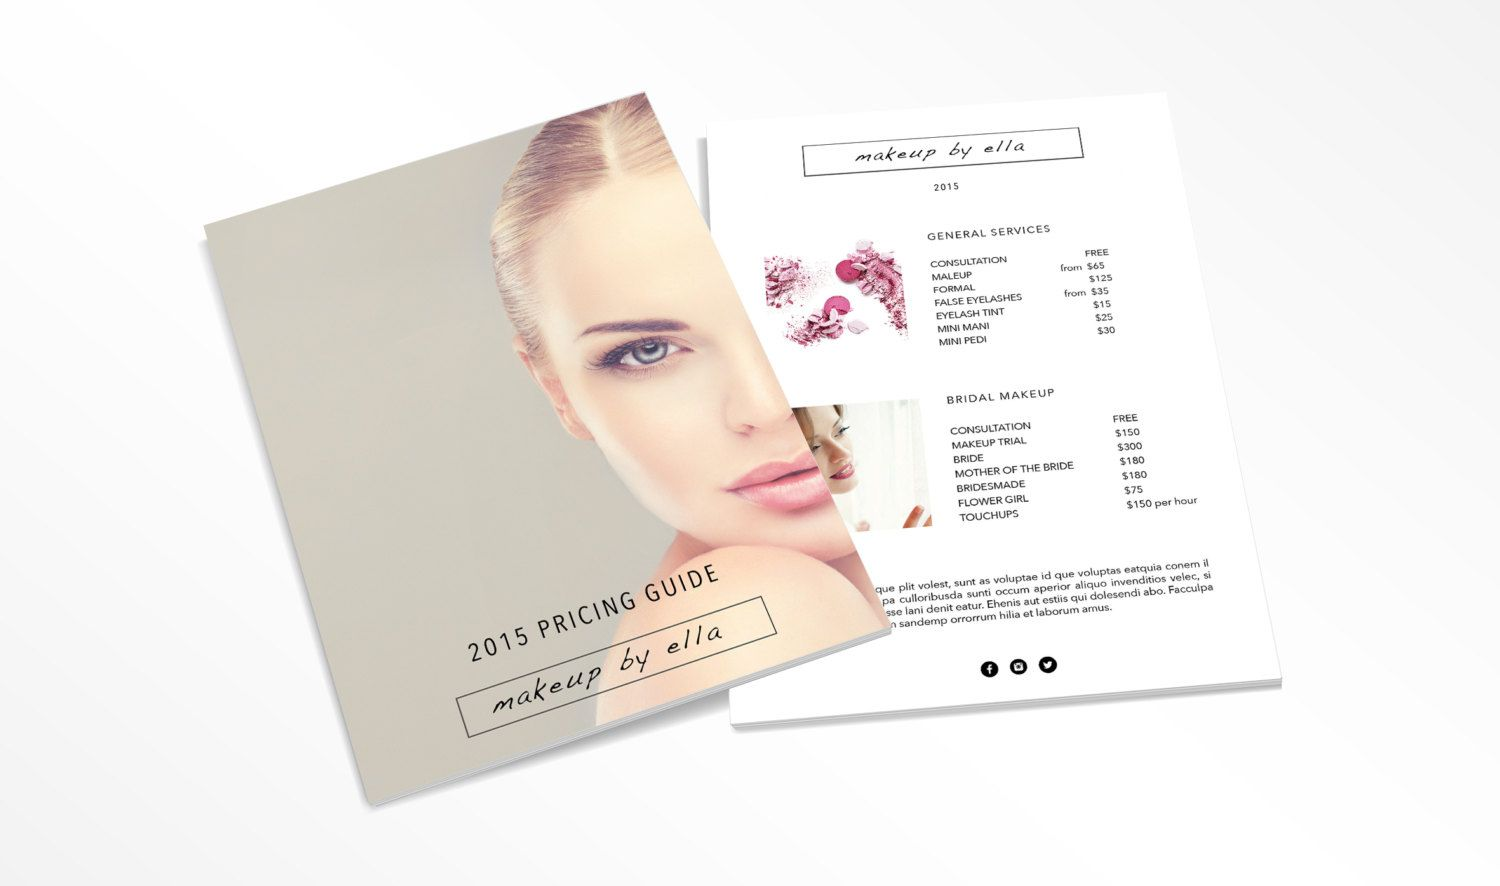 Makeup Price List Price Guide Design Template By EmandCoDesign - How to make a invoice in excel 2007 cheap online makeup stores